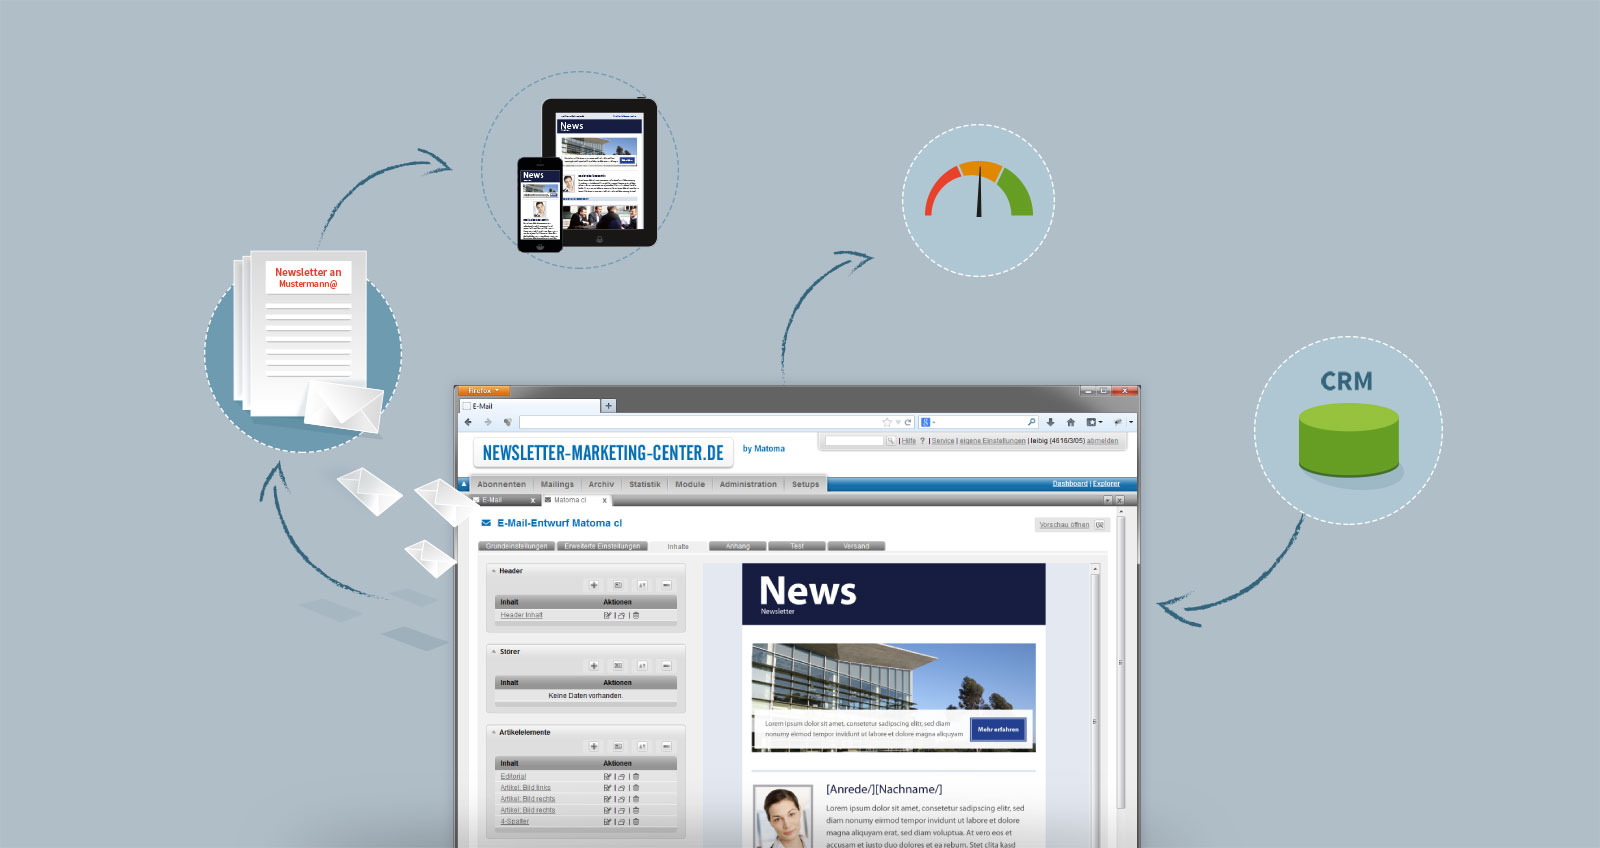 Newsletter-Marketing-Center als Mini-CRM